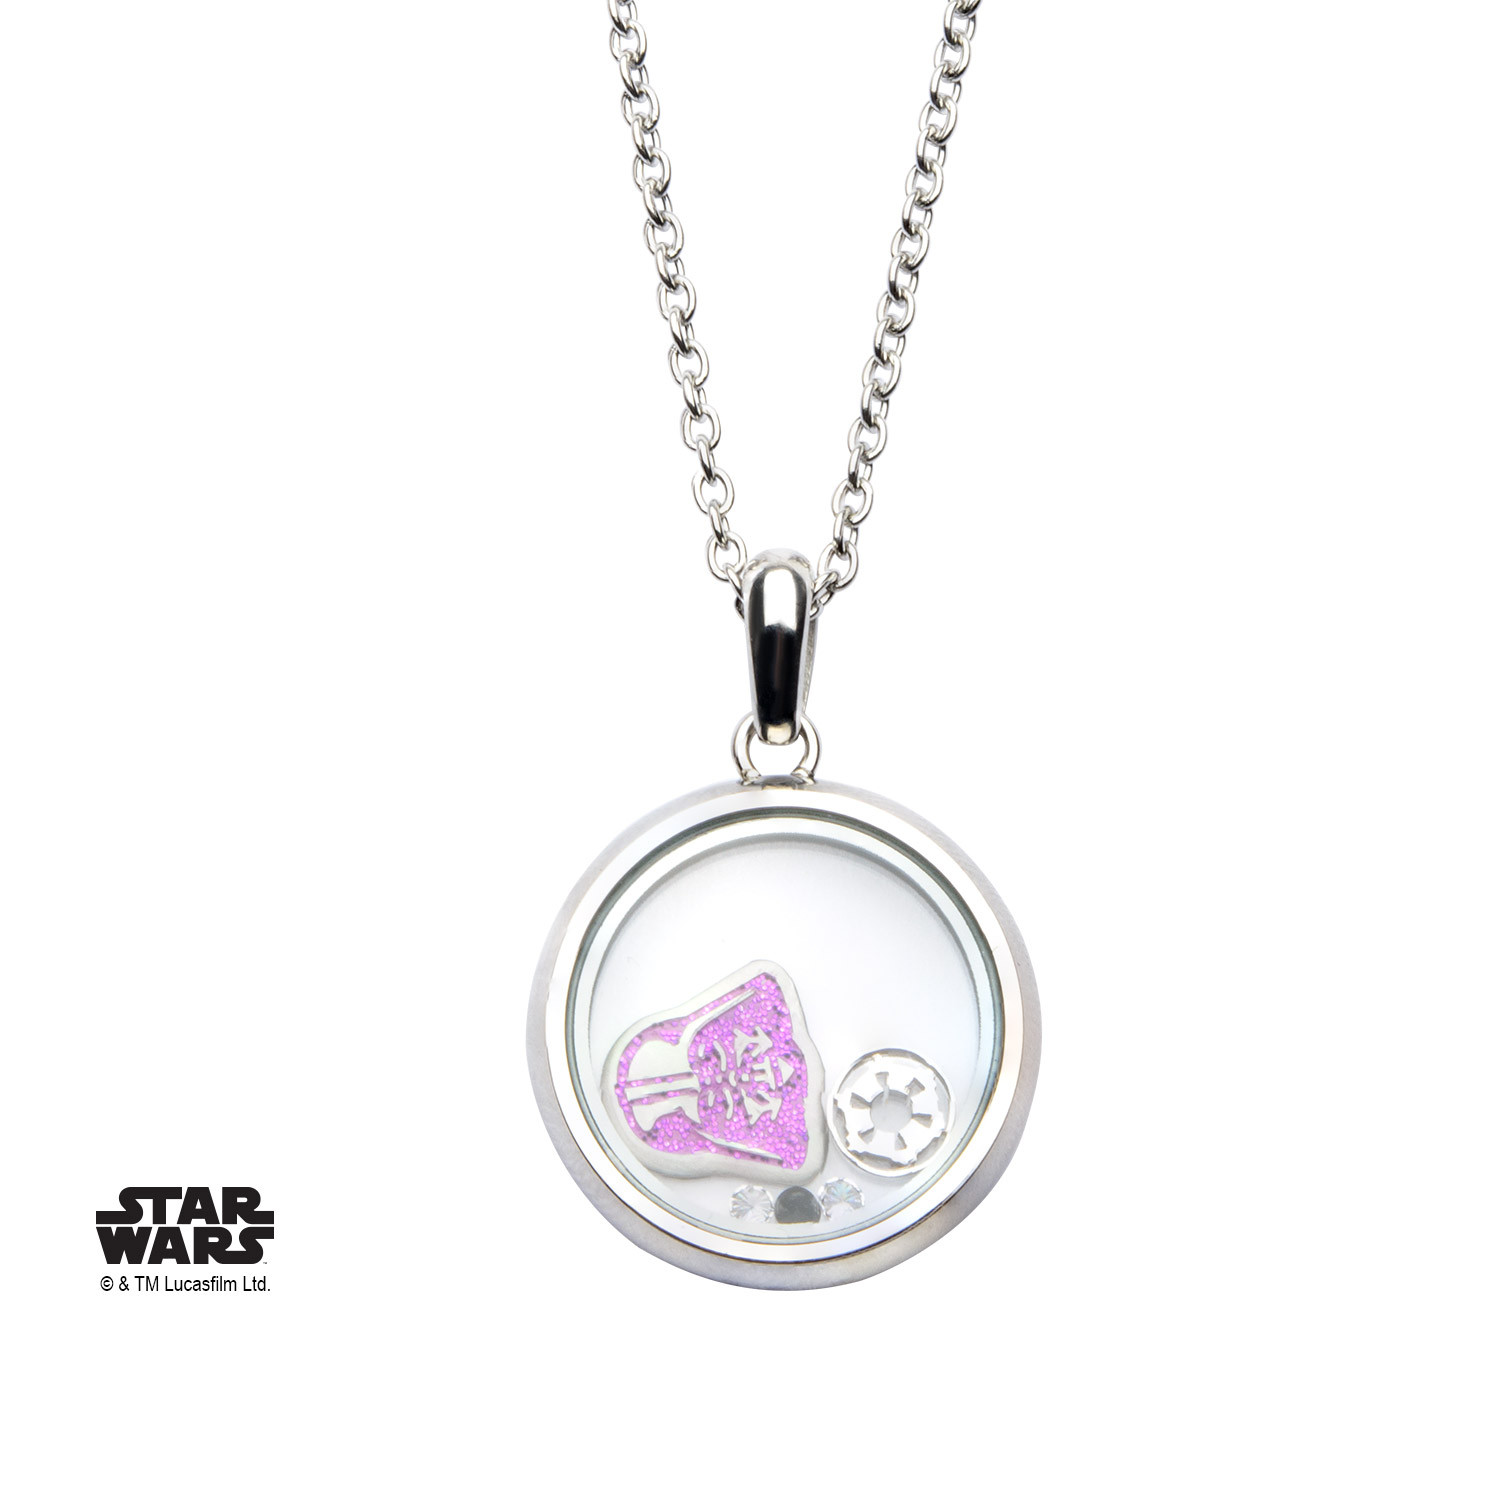 5bb5b1548af58 New Star Wars jewelry from Body Vibe - The Kessel Runway